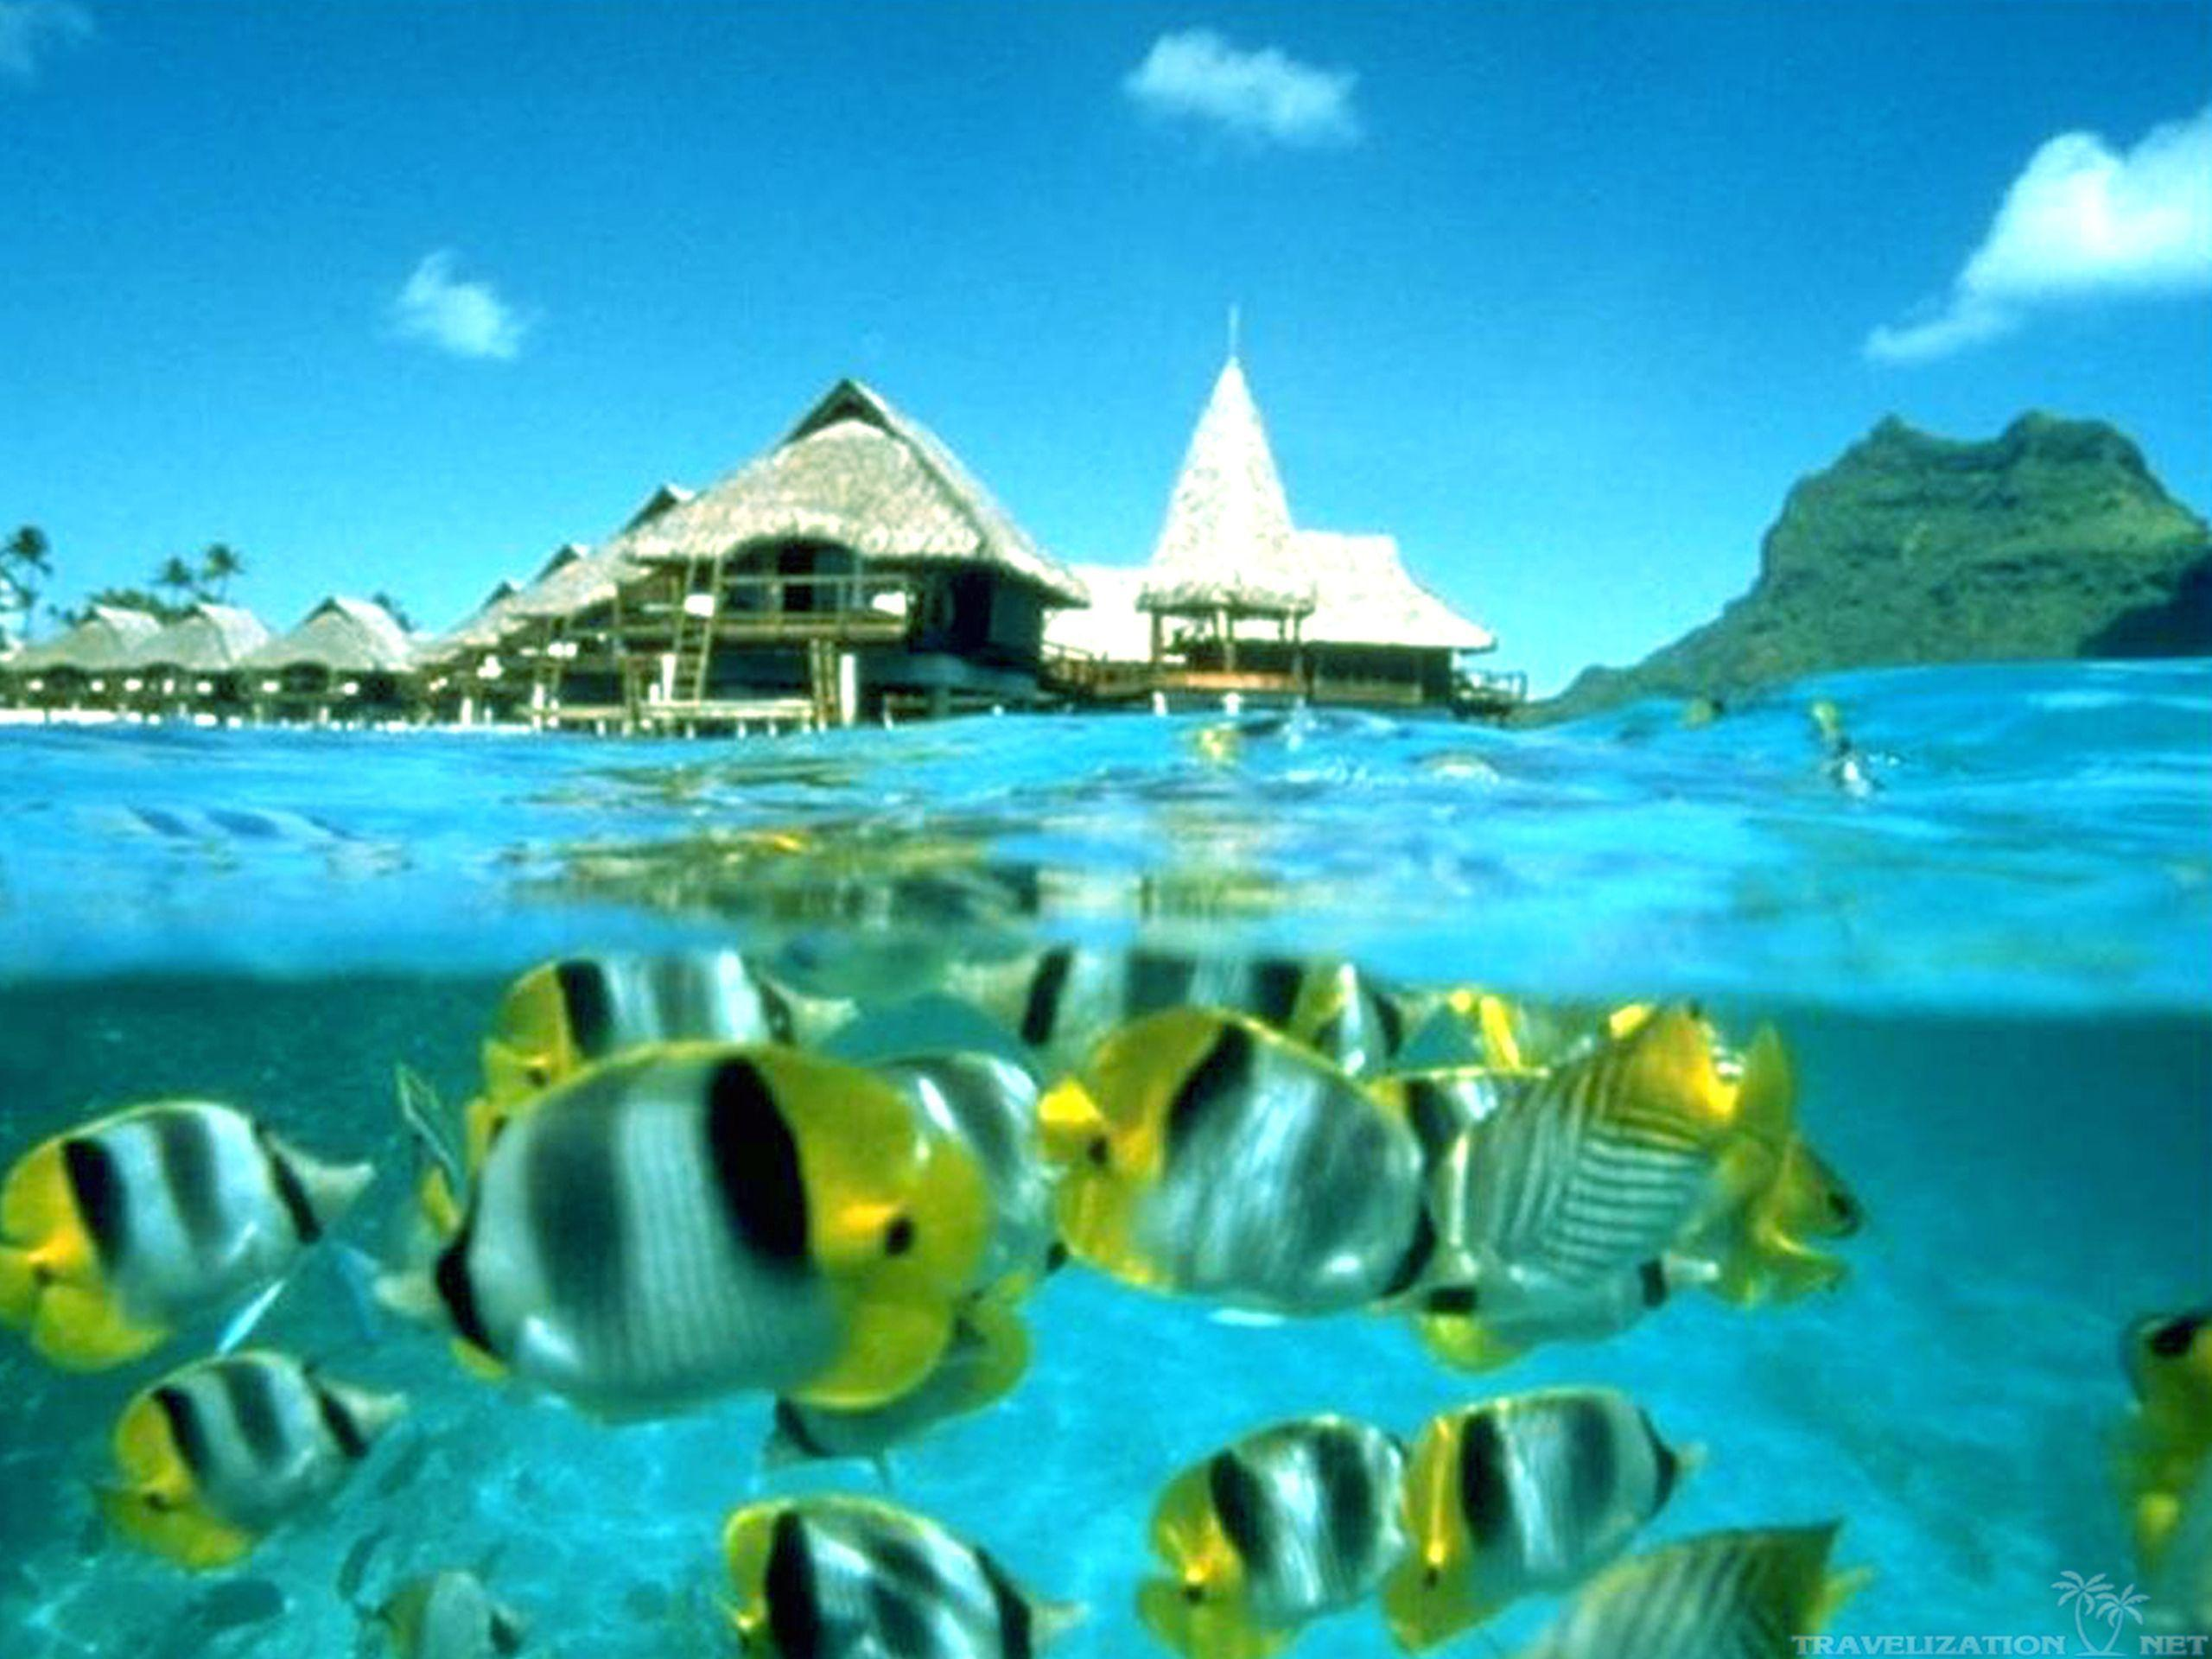 Hd Tropical Island Beach Paradise Wallpapers And Backgrounds: Tahiti Wallpapers